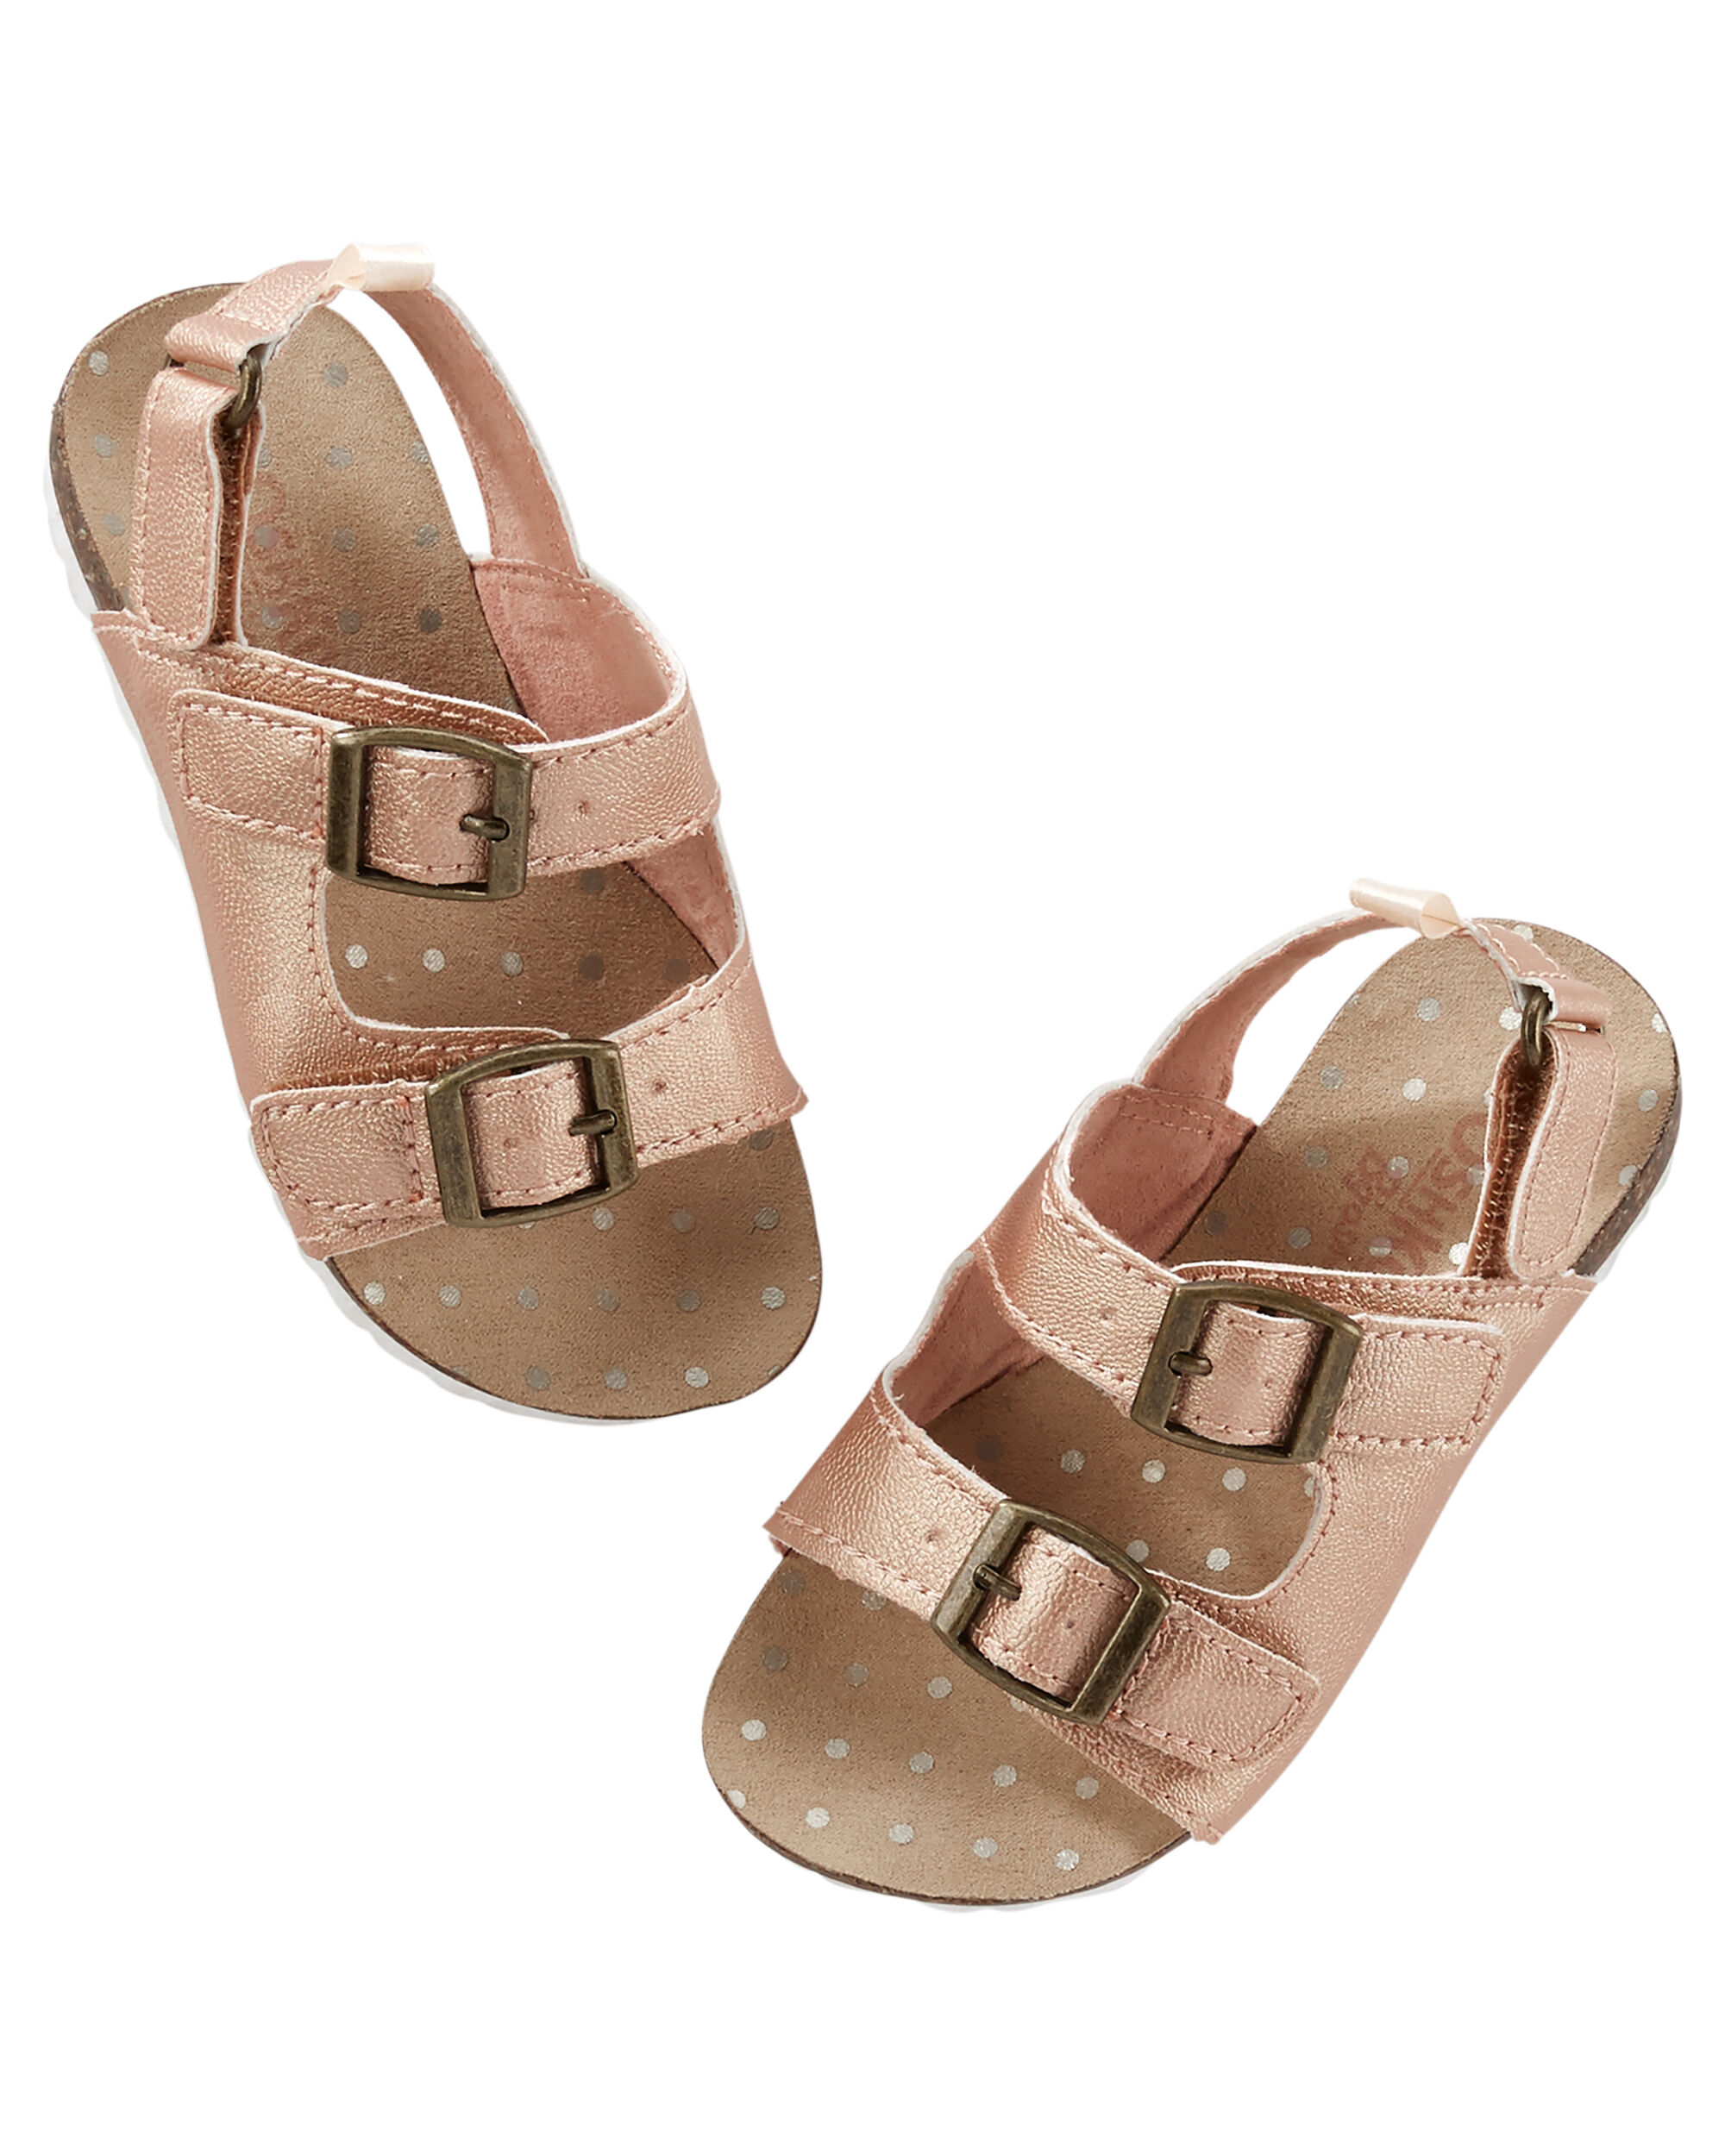 Baby Girl OshKosh Buckle Sandals